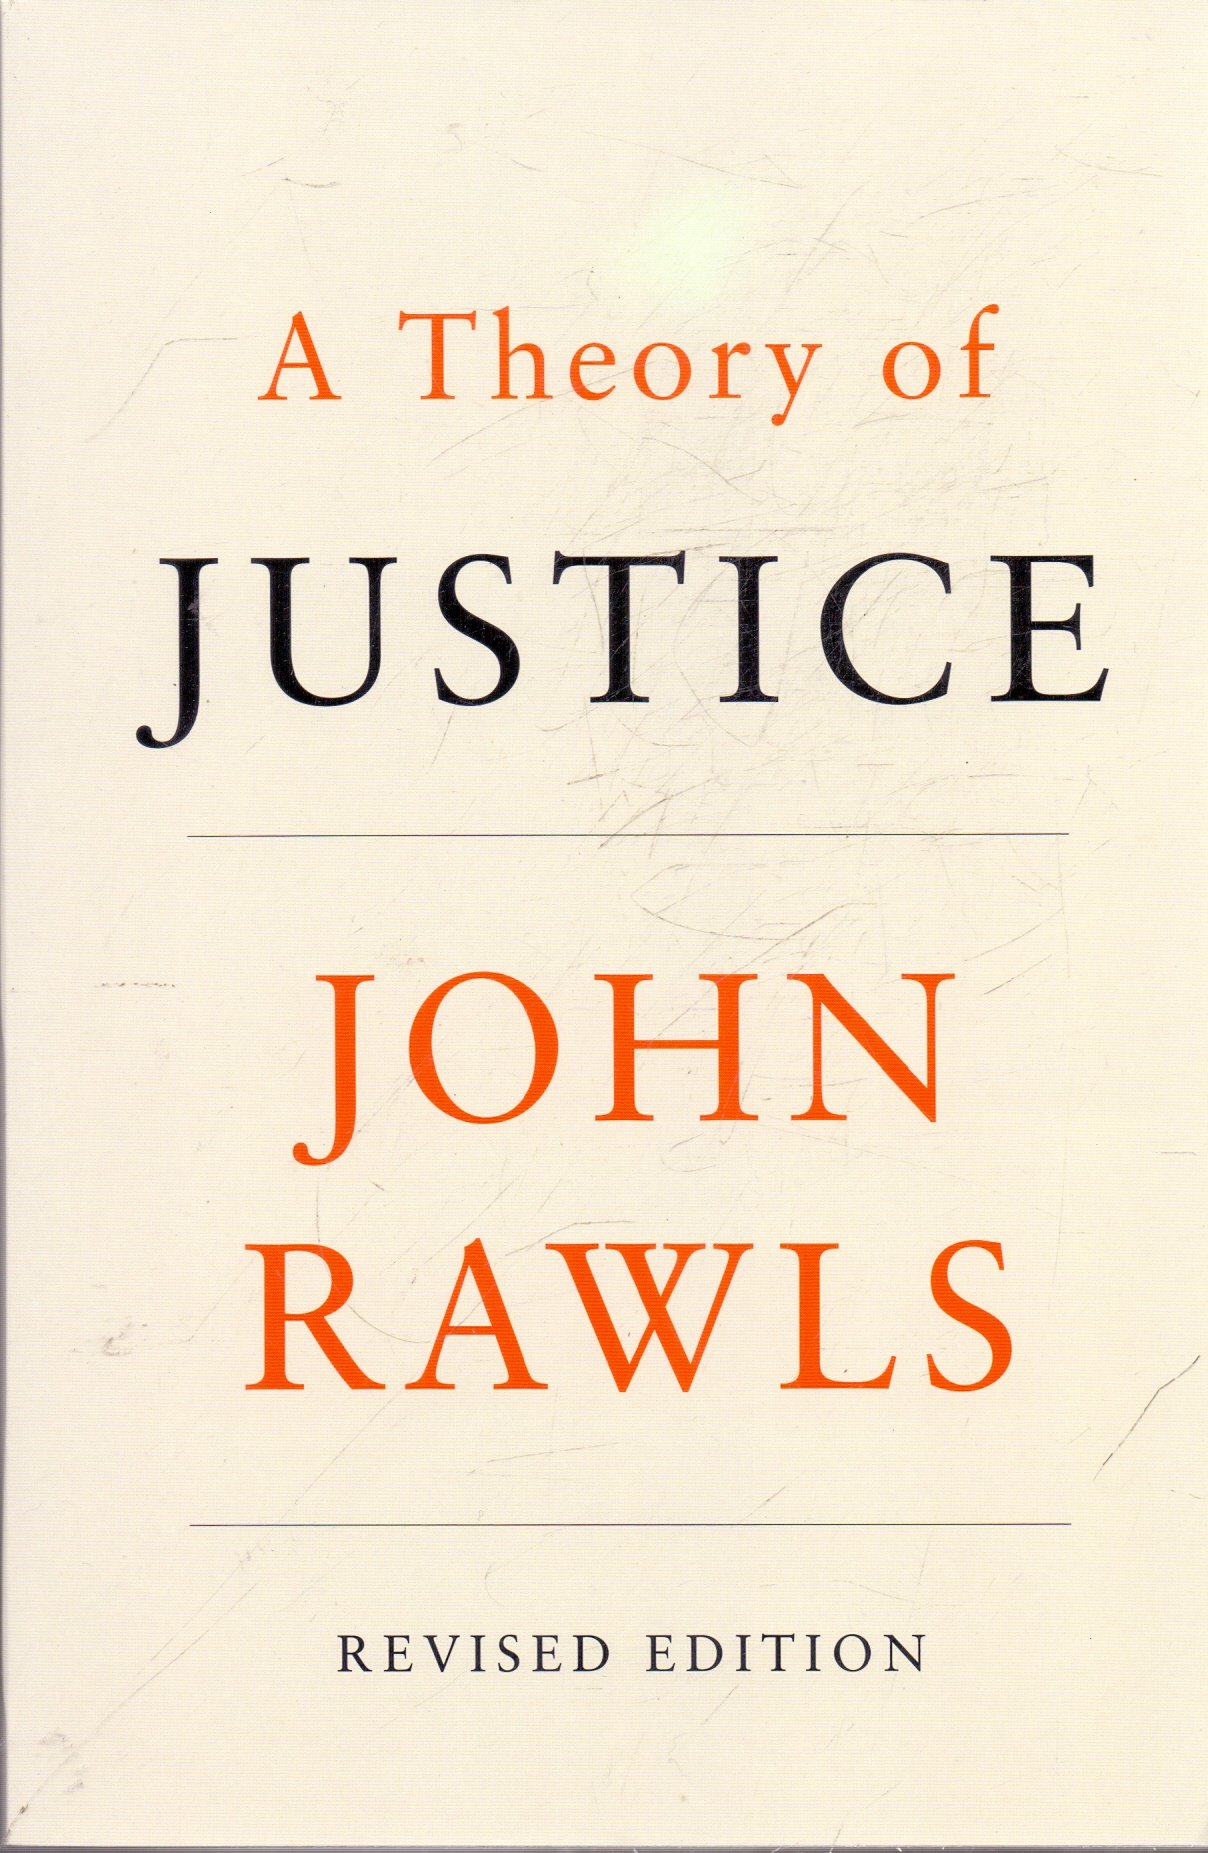 john rawls theory of liberalism Rawls's political liberalism is a rich and suggestive account of how to justify a scheme of principles for ordering the basic structure of society clearly no one else has produced a work that matches the scope of rawls's theory but it still leaves us with some pressing problems.